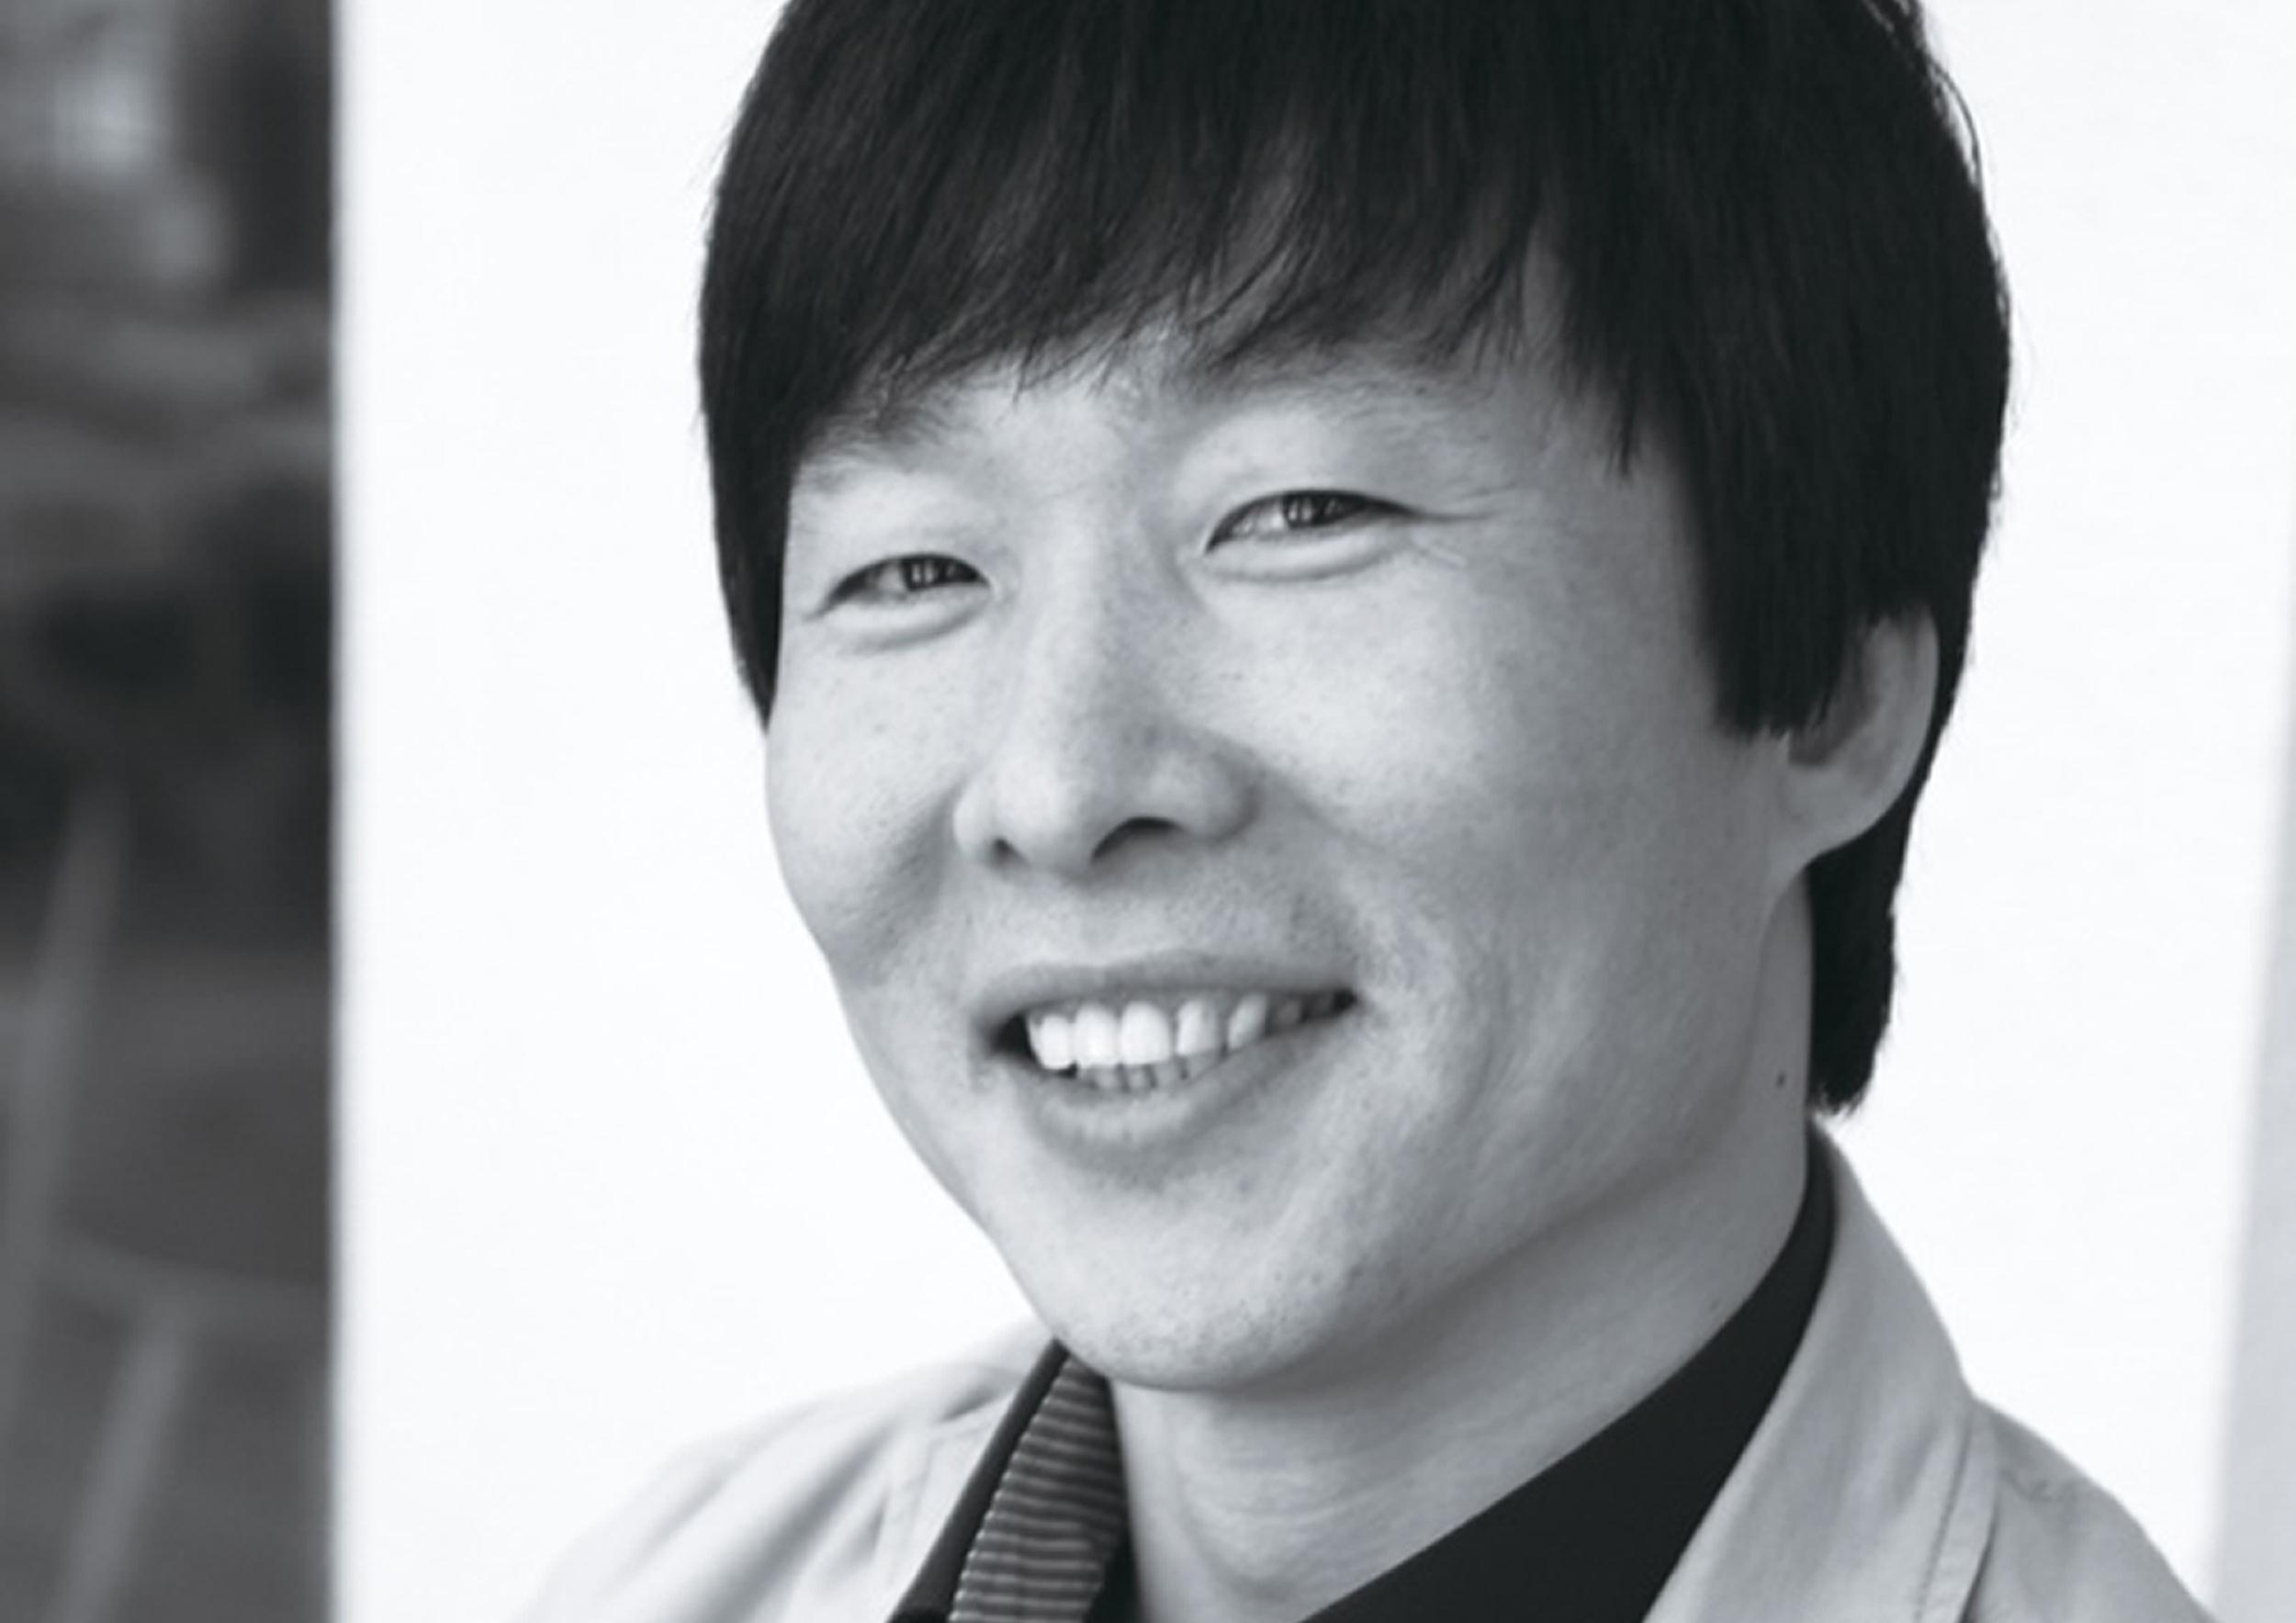 Hyuk Kim was arrested at the age of 16 when he tried to cross the border into China.